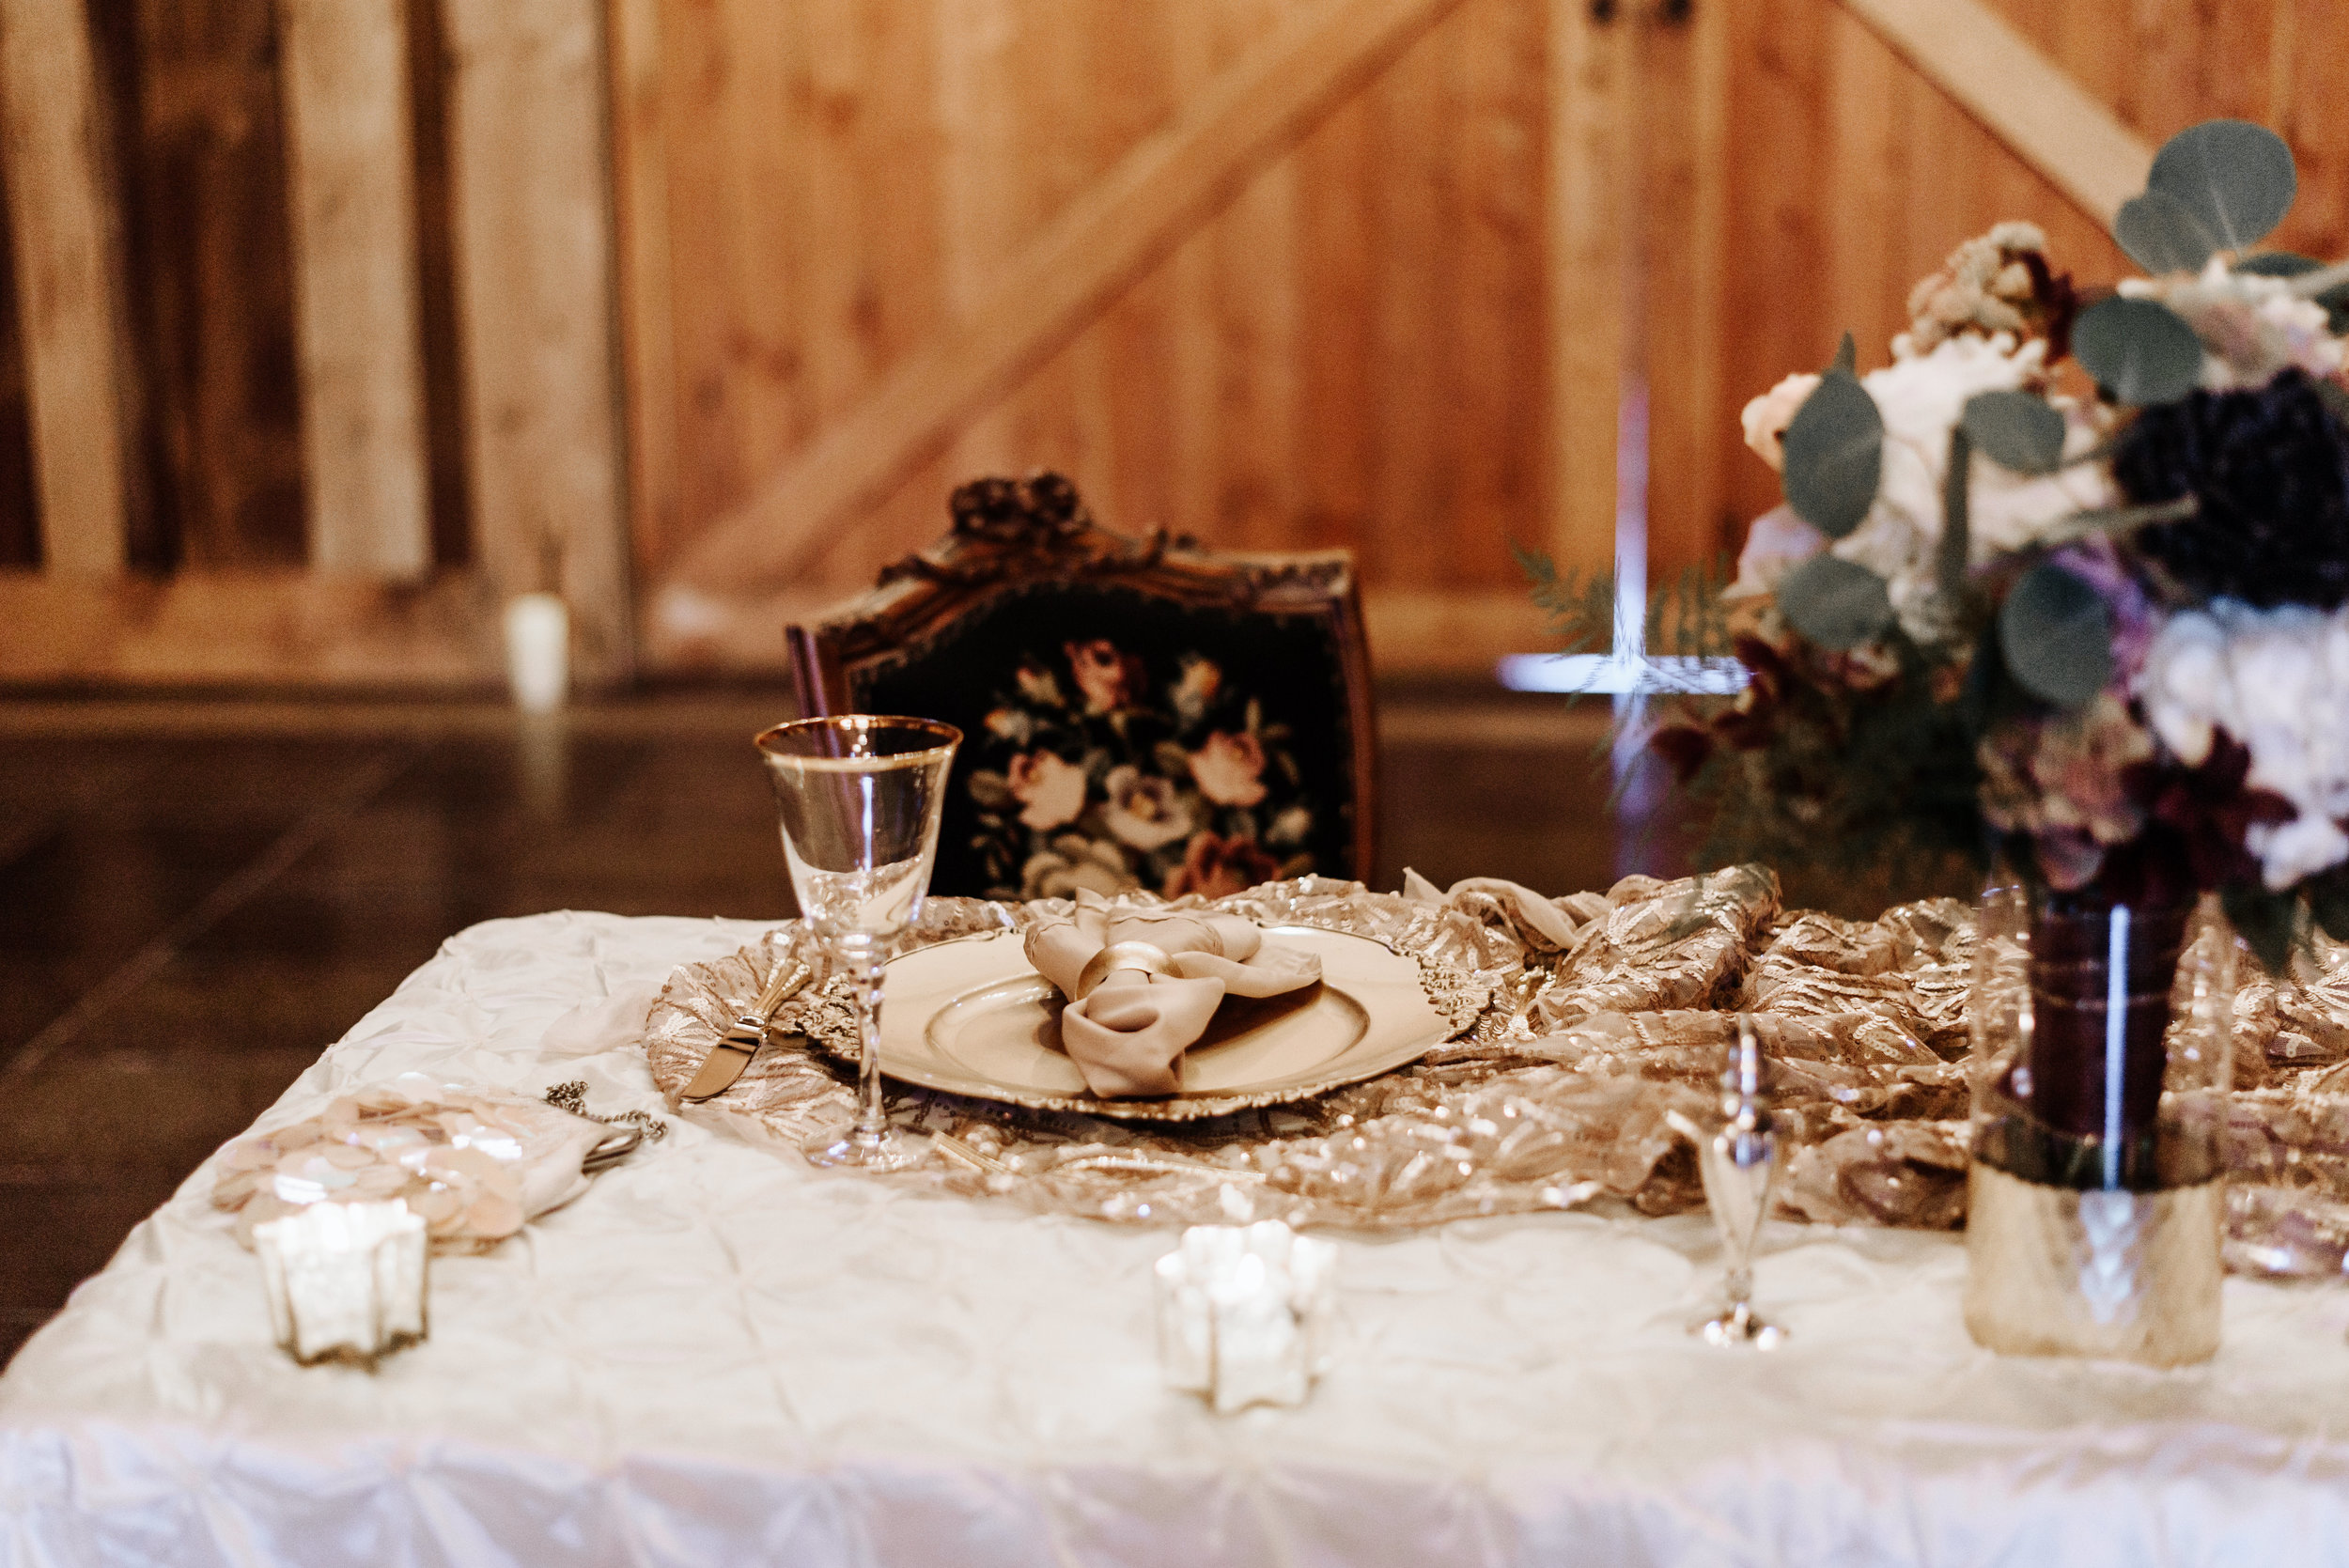 Grant-Station-Styled-Shoot-Whimsical-Moody-Fairytale-Wedding-Photography-by-V-2910.jpg